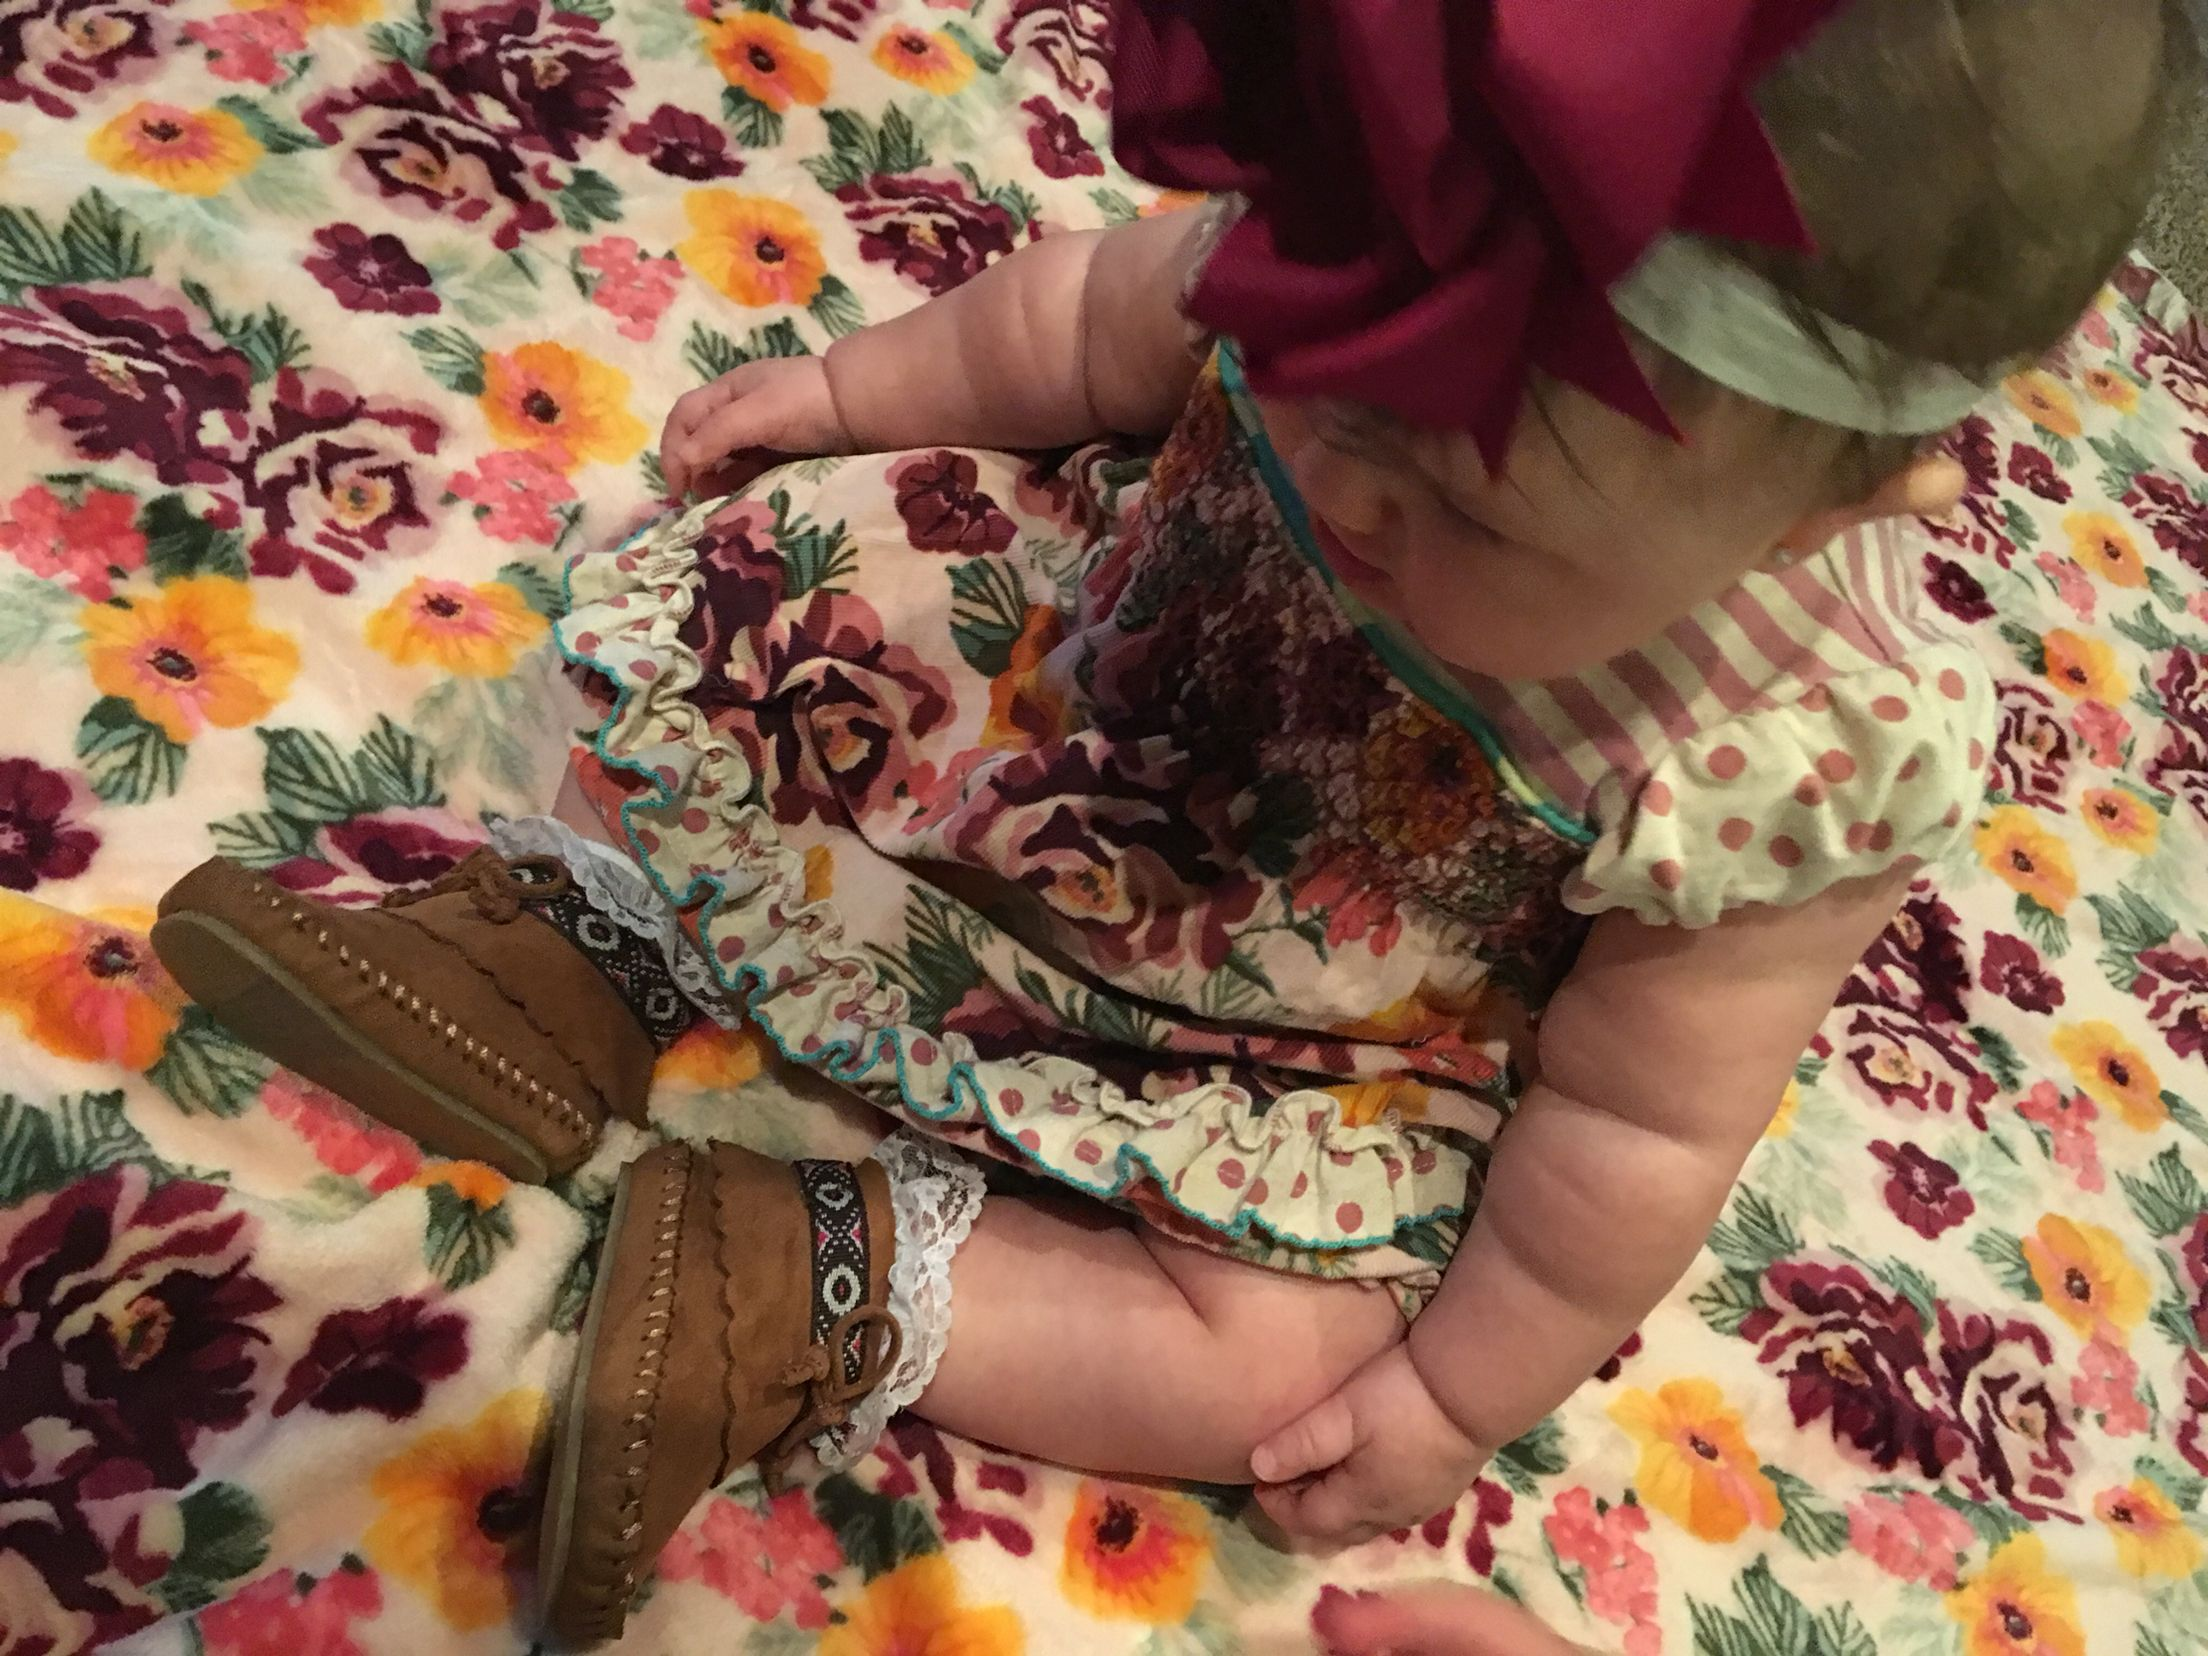 Ma matilda jane good luck trunk coupon code - Matilda Jane Clothing Promo Blanket And Baby Lineit S Perfect Email Rebeccafitch Matildajaneclothing Com